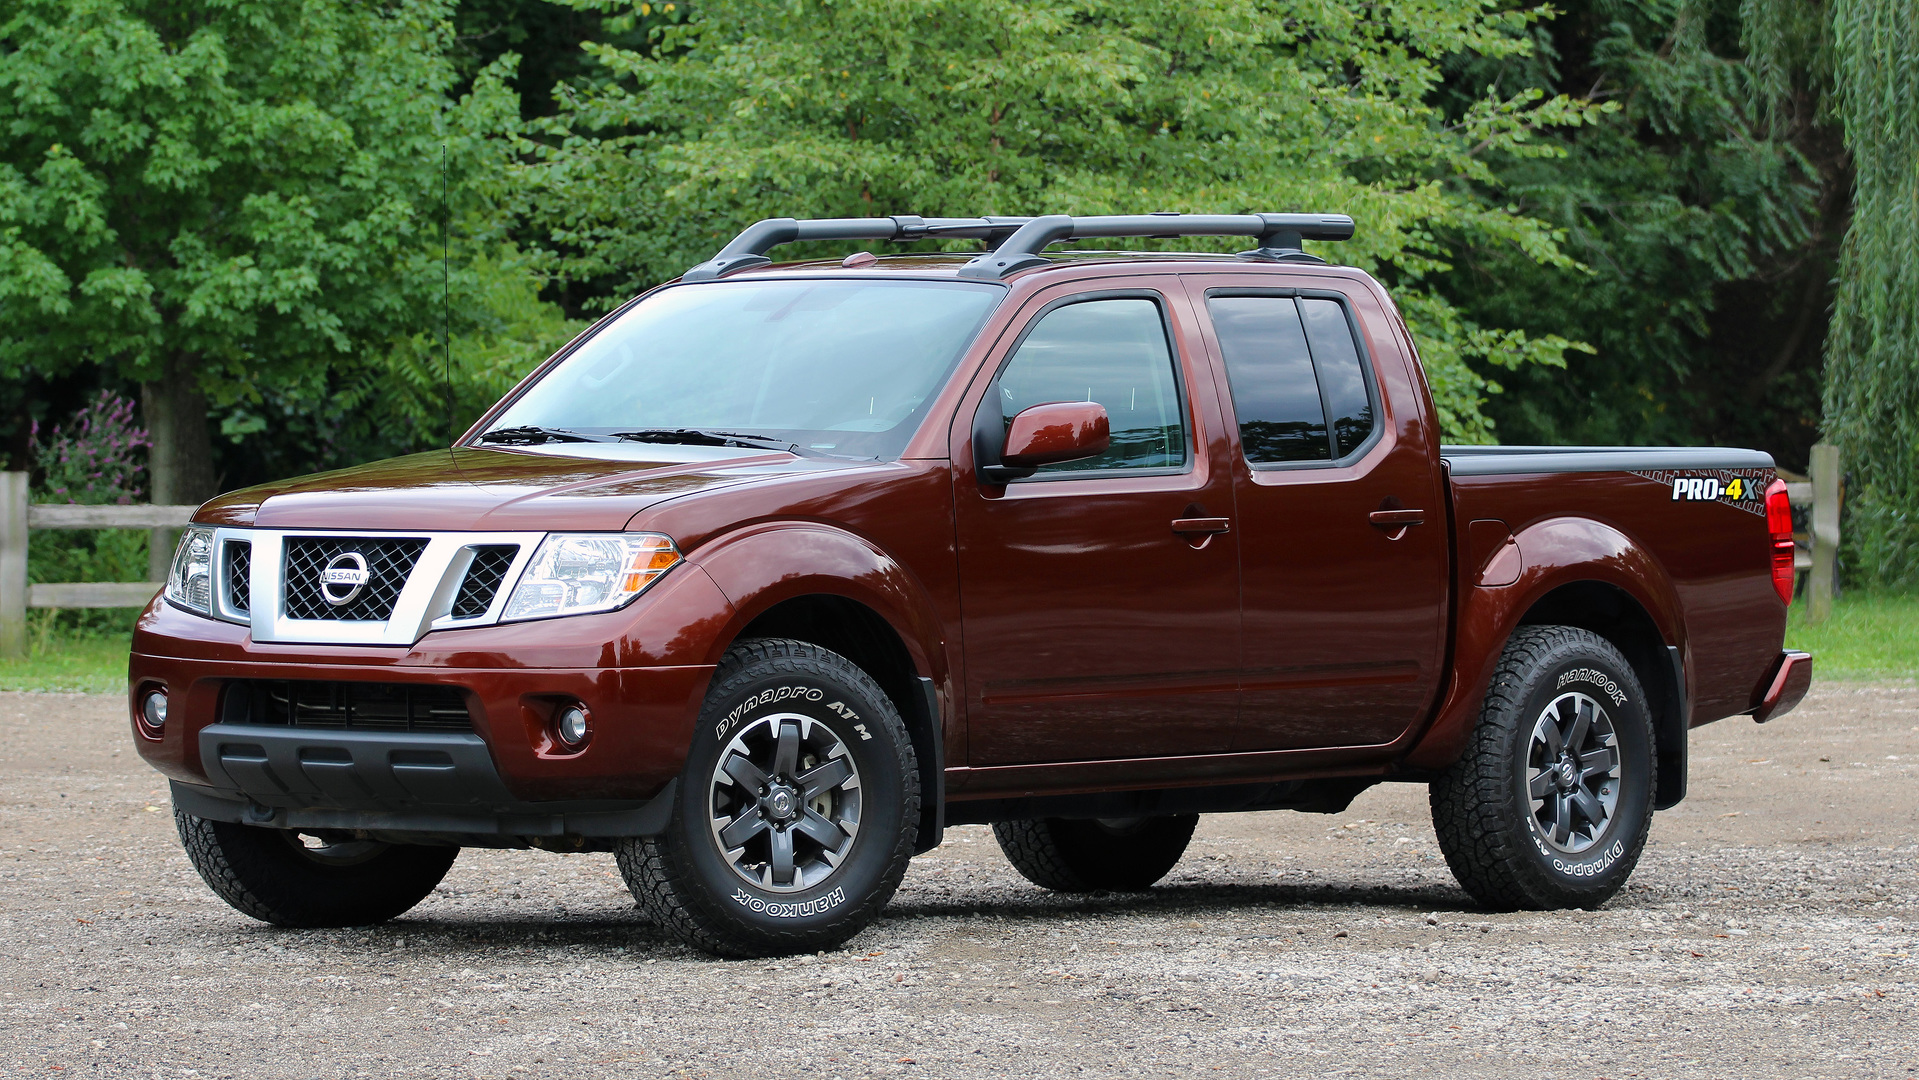 Frontier Pro 4x 2016 >> Review: 2016 Nissan Frontier Pro-4X